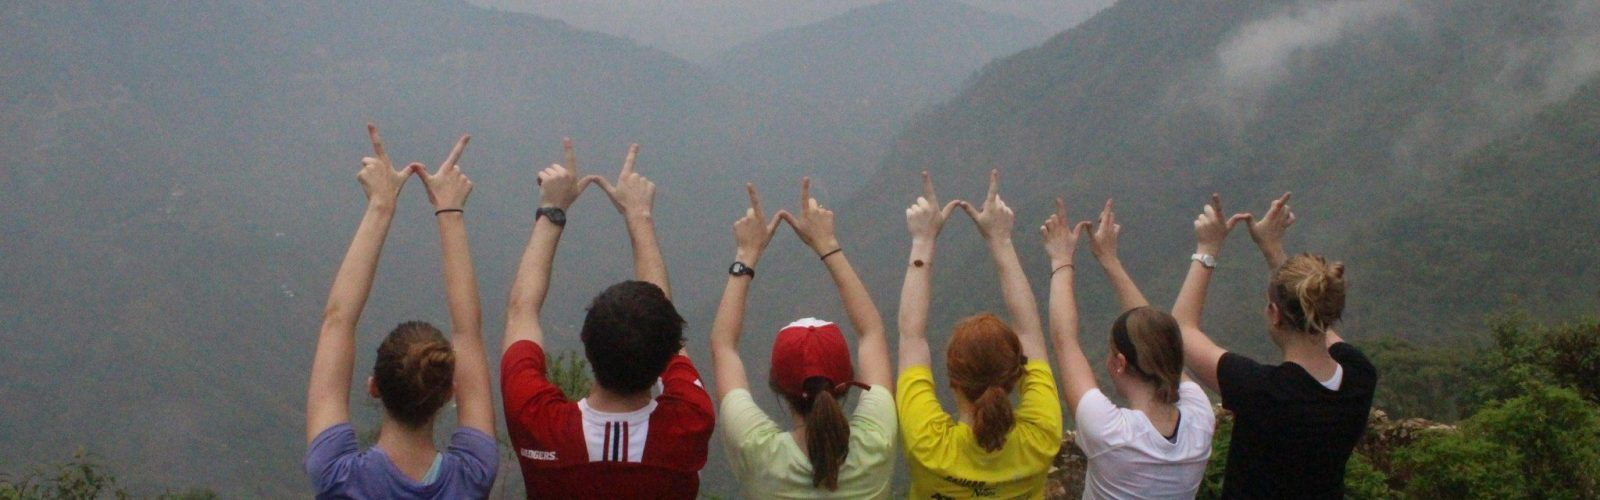 Students have their arms raised, making a W with their hands, looking out at mountains in the mist.